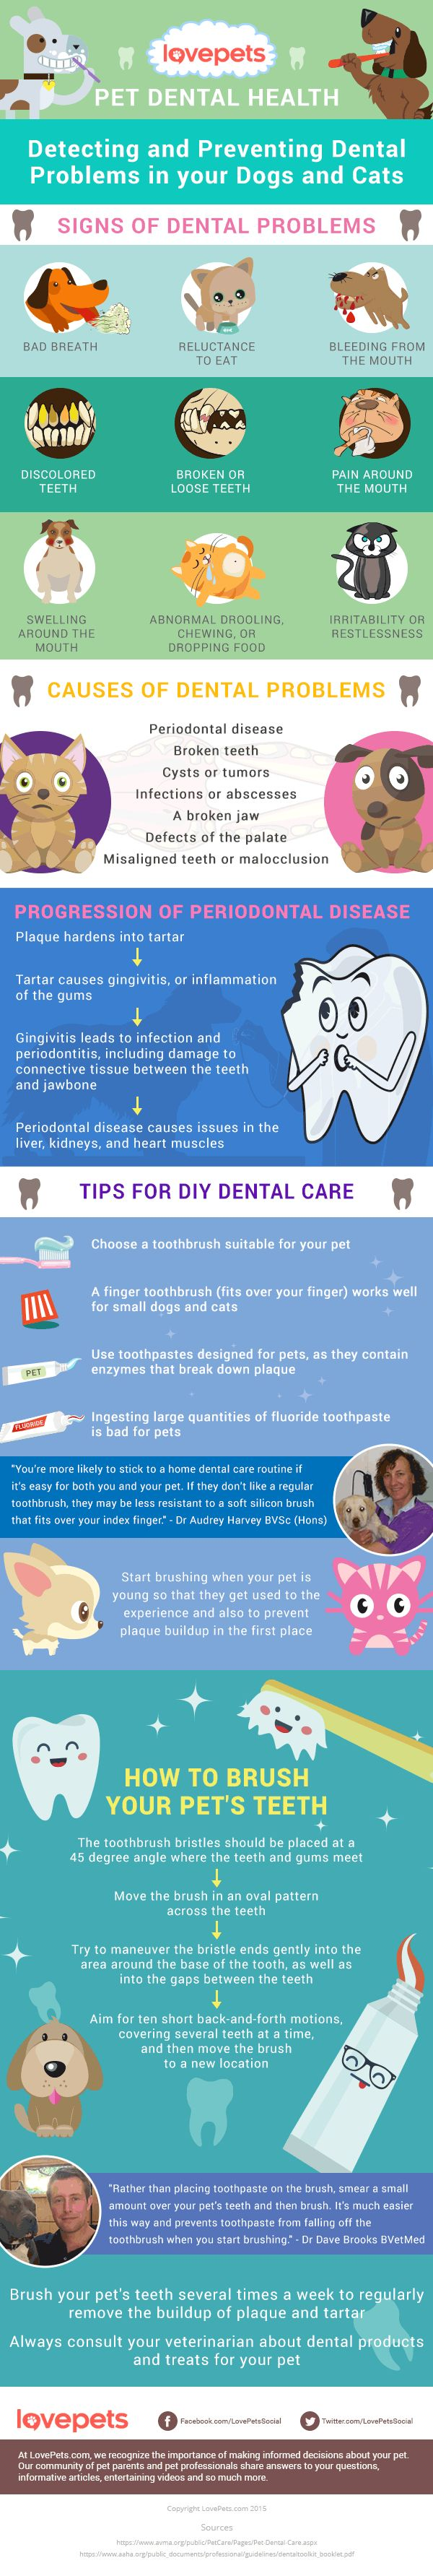 February Is Pet Dental Health Awareness Month Break Out Those Toothbrushes